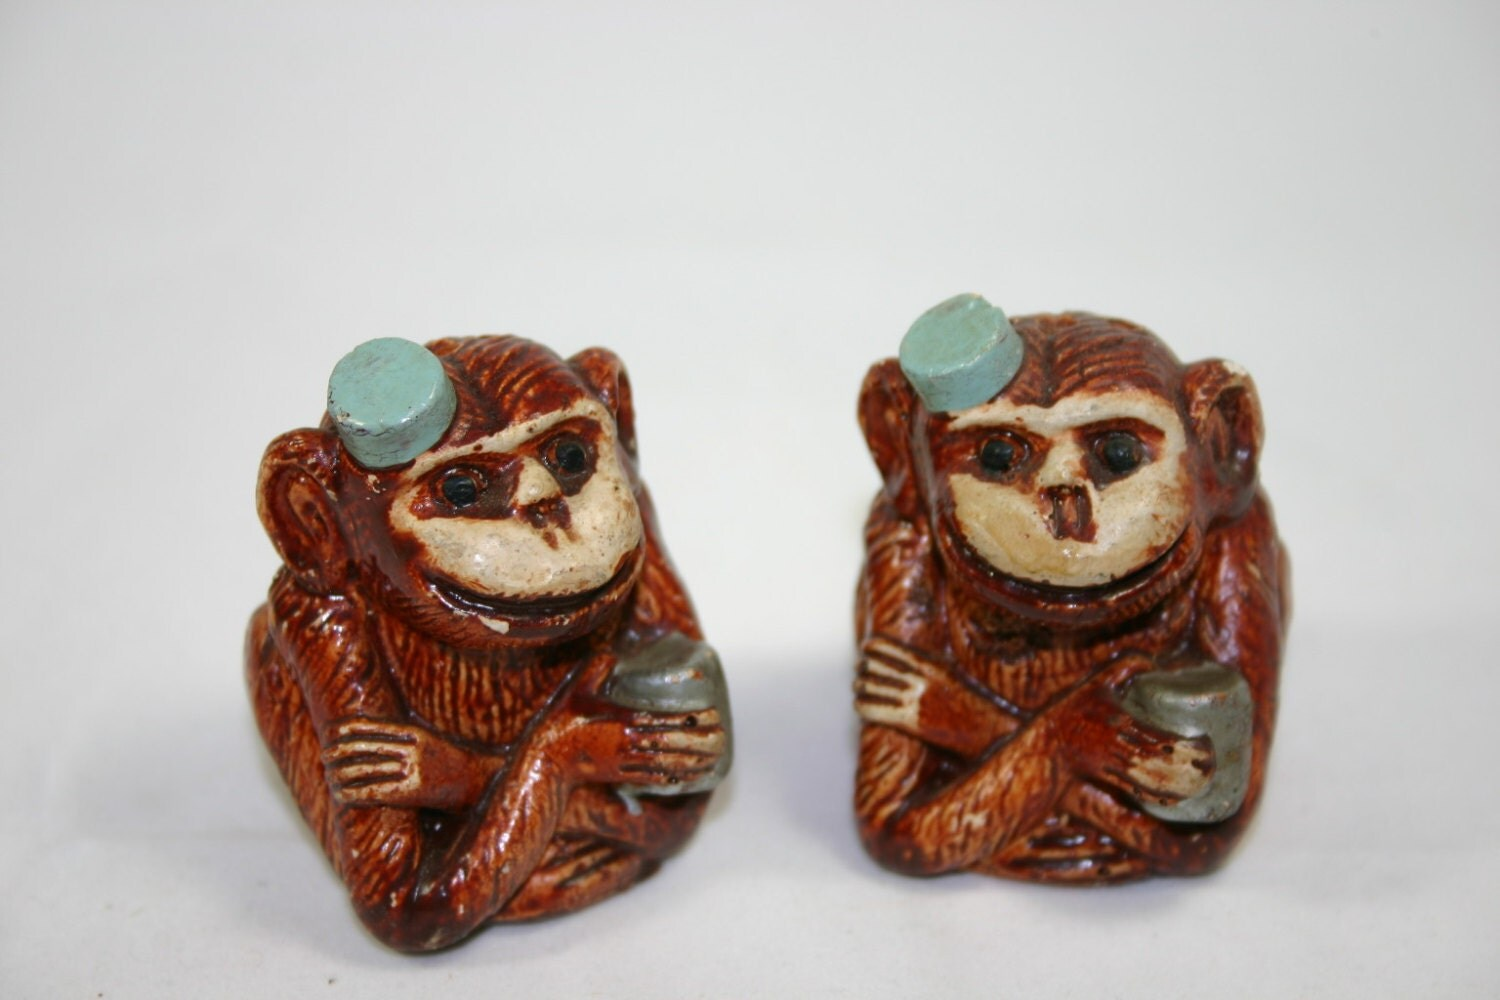 Vintage Salt And Pepper Shakers Unique Ceramic Organ Grinder